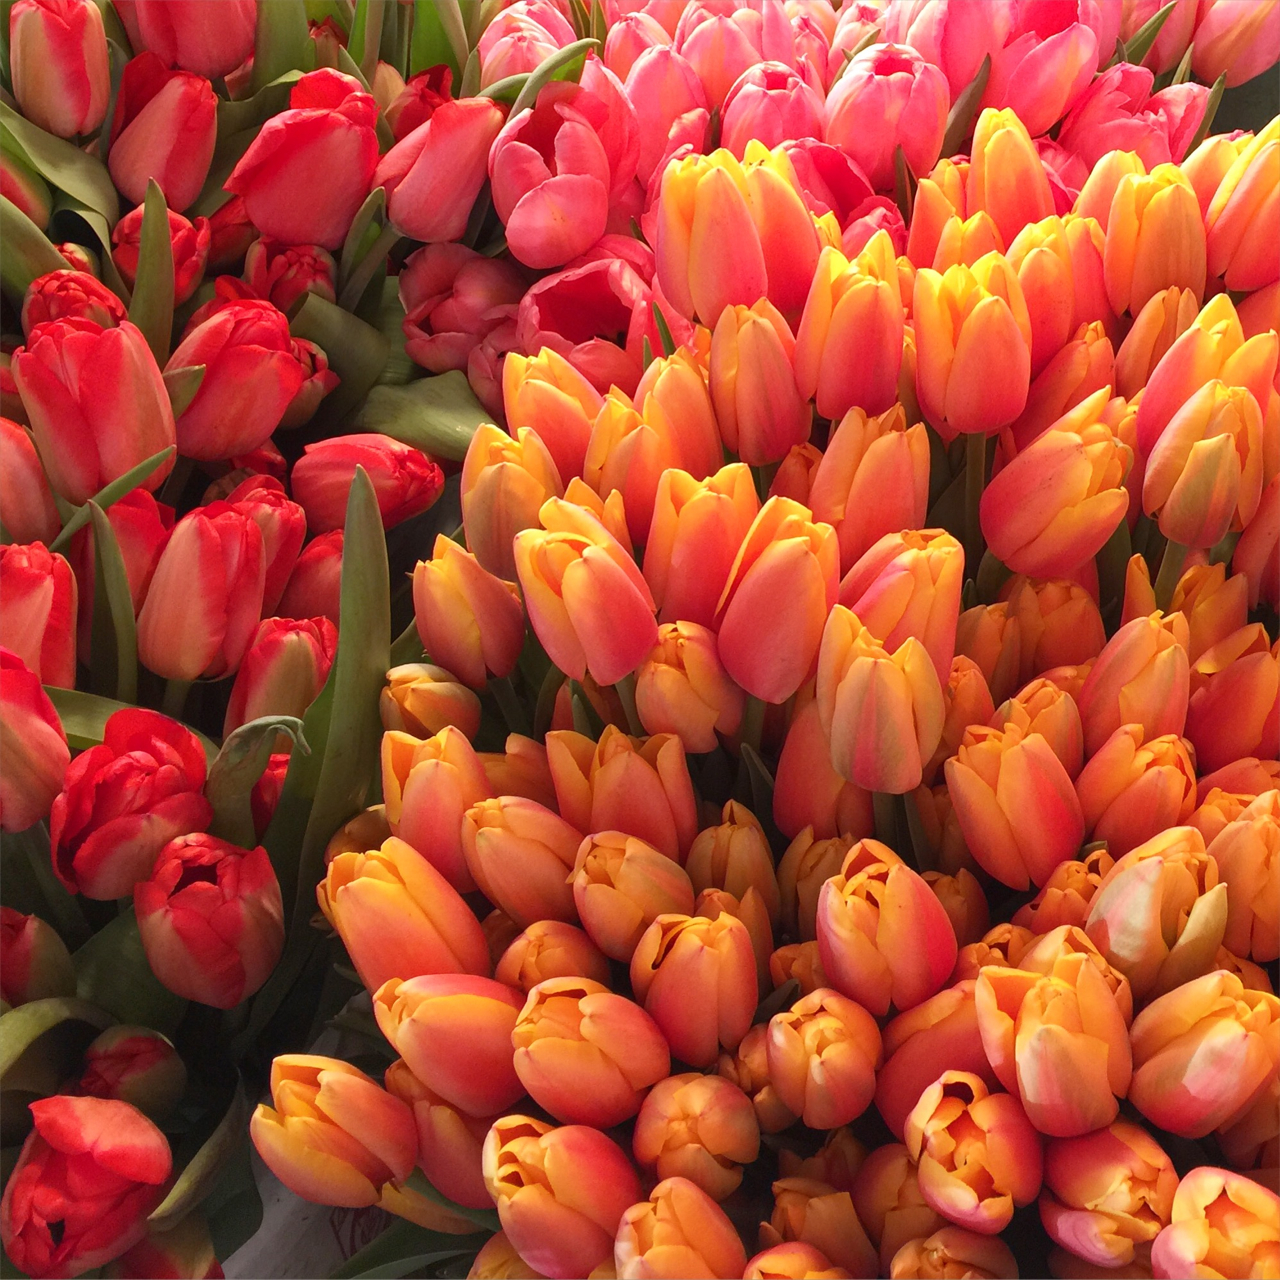 Fresh tulips at the market